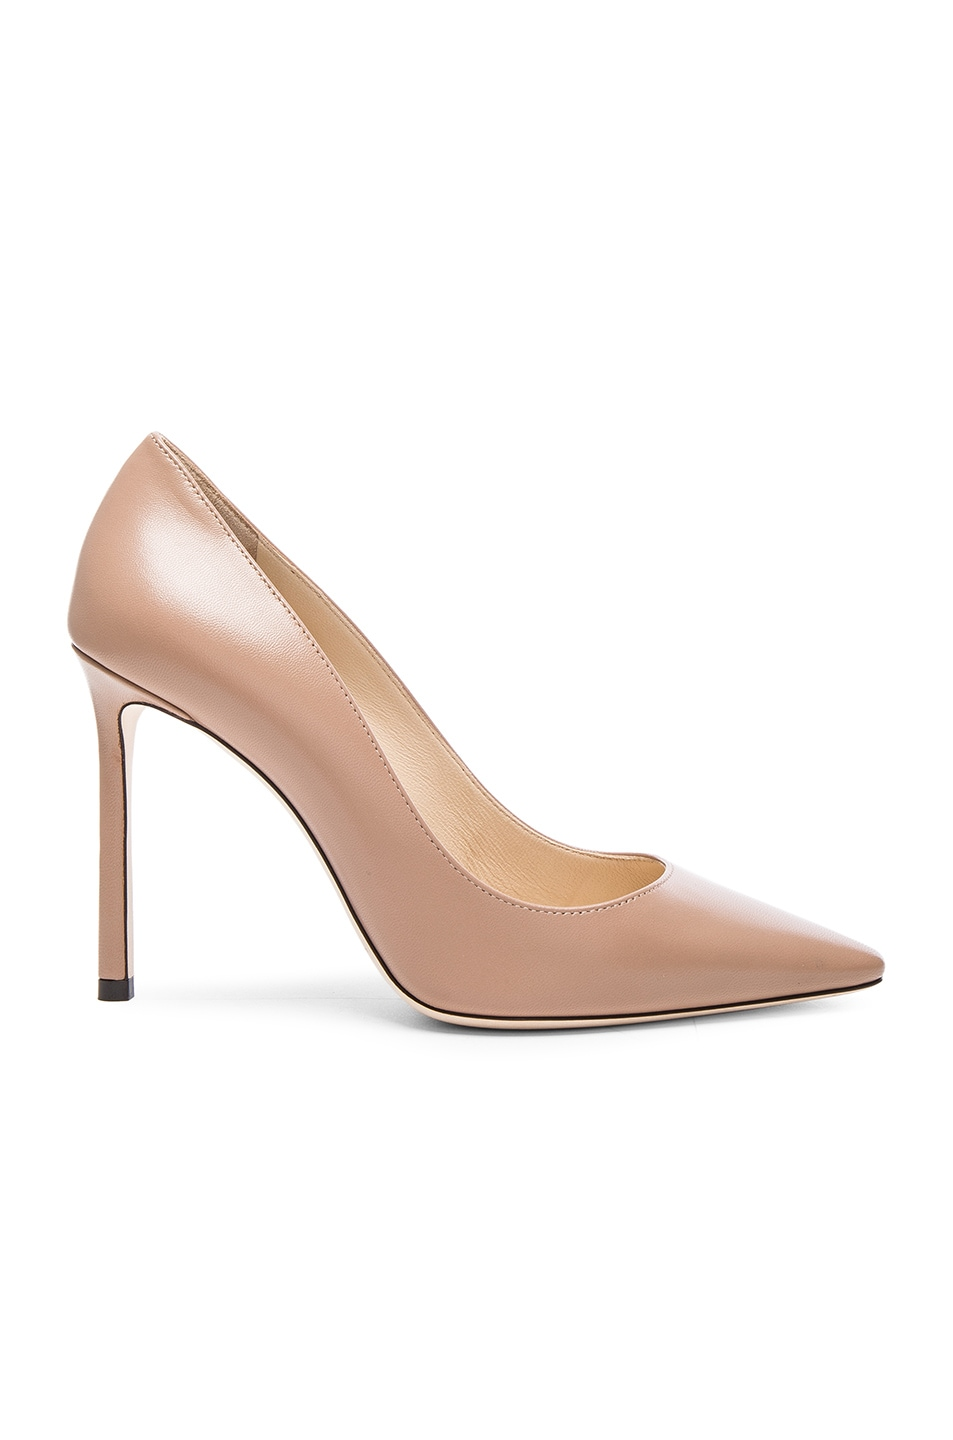 Image 1 of Jimmy Choo Romy 100 Leather Pumps in Ballet Pink